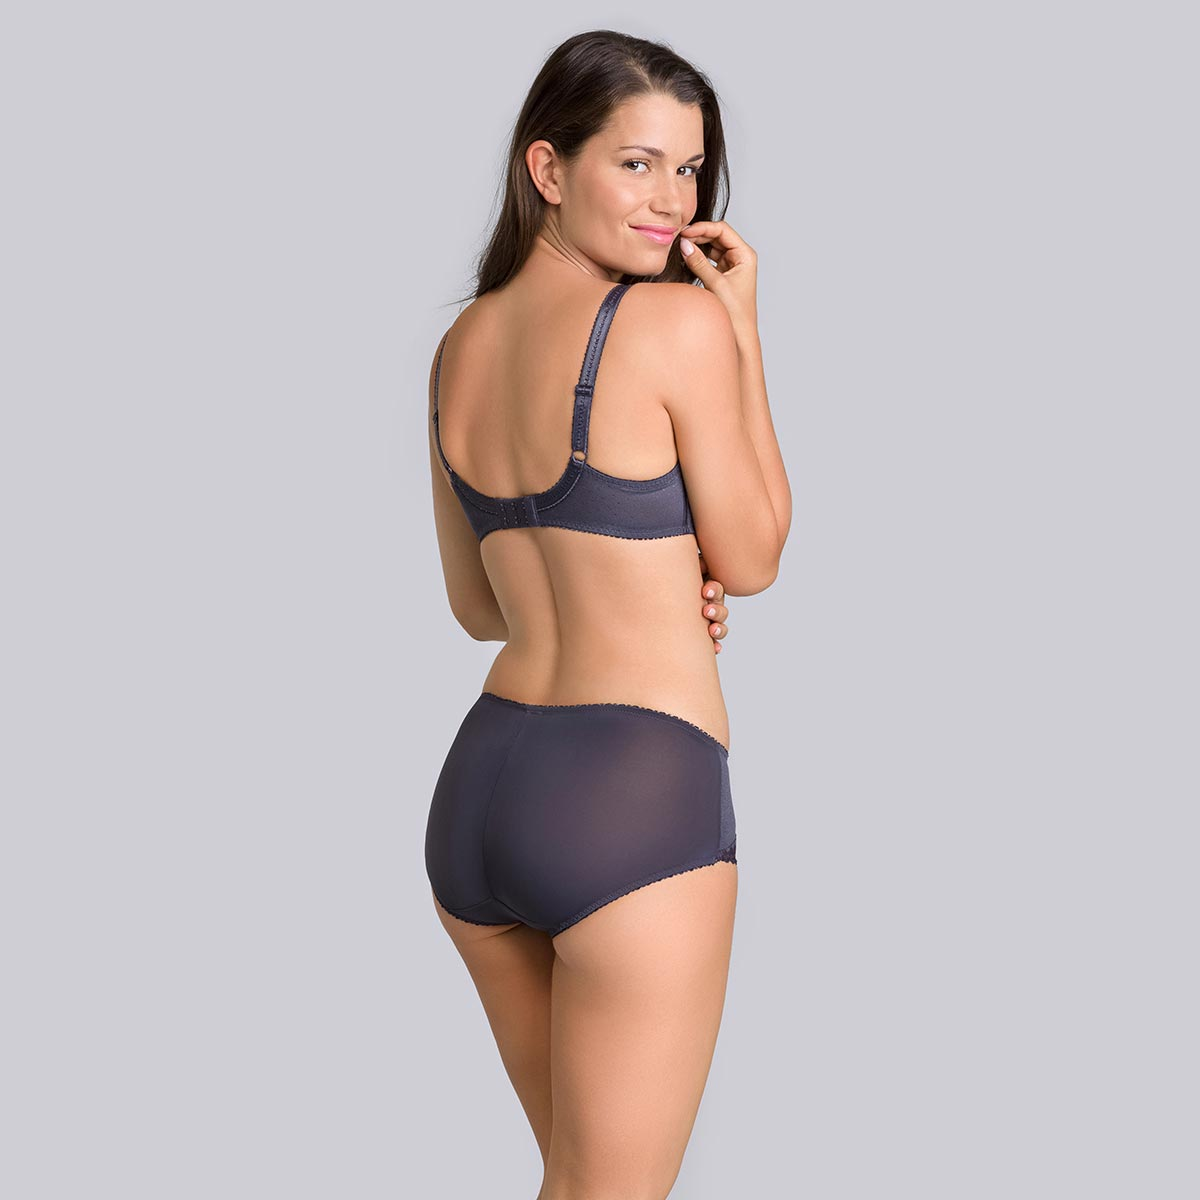 Steel grey midi briefs - Cross your Heart Feminine-PLAYTEX